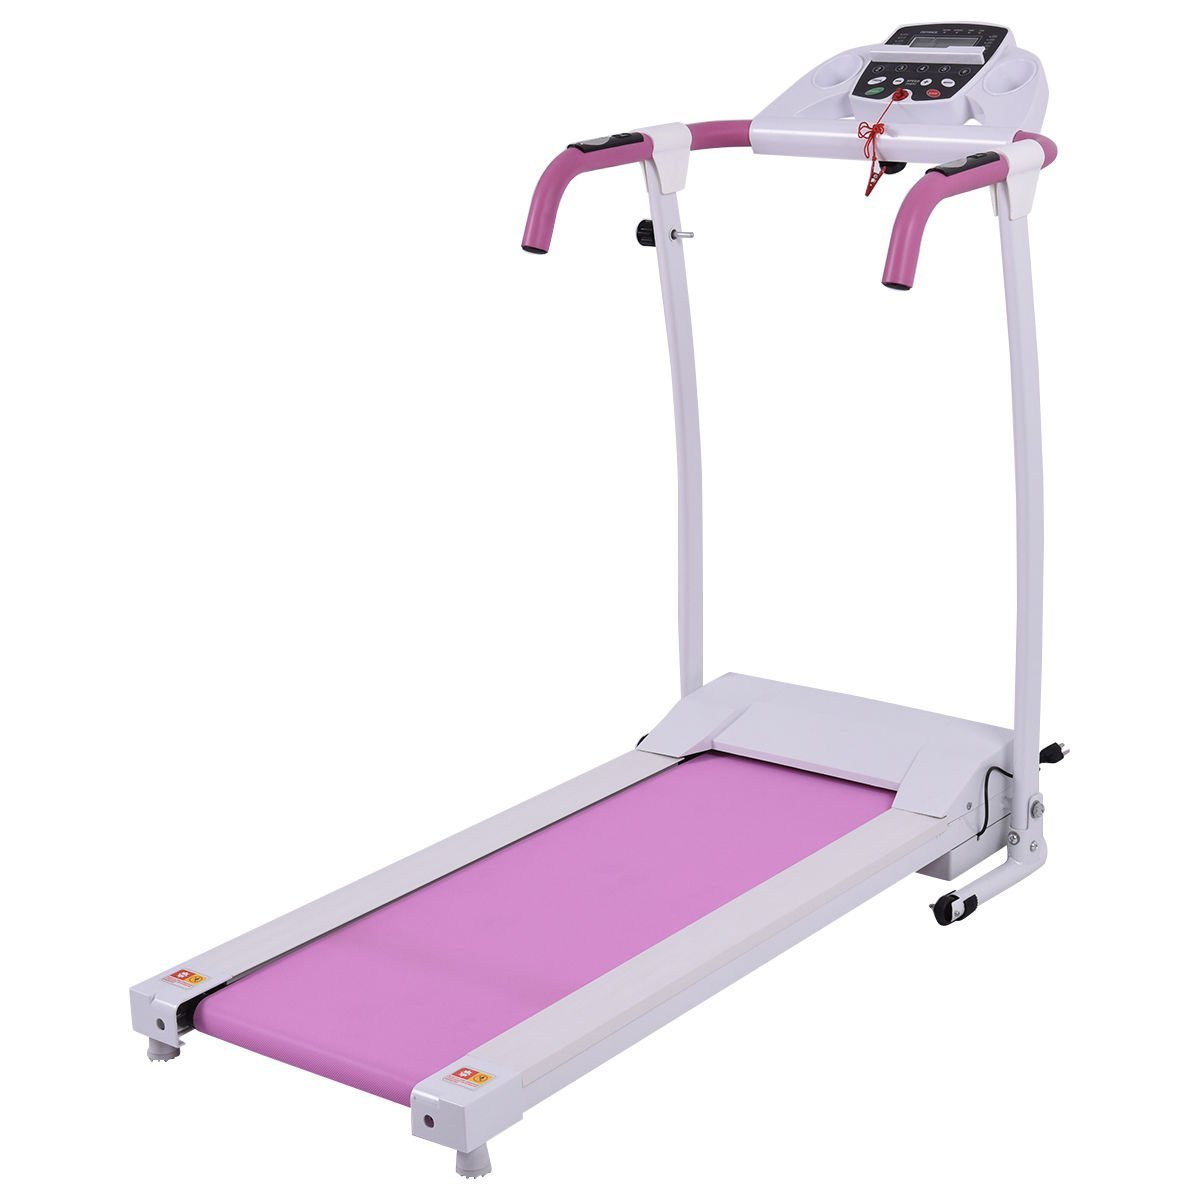 GYMAX Folding Exercise Treadmill Fitness Electric Treadmill Electric Motorized Power Fitness Running Machine 800W W/IPAD Mobile Phone Holder (Pink) by GYMAX (Image #1)